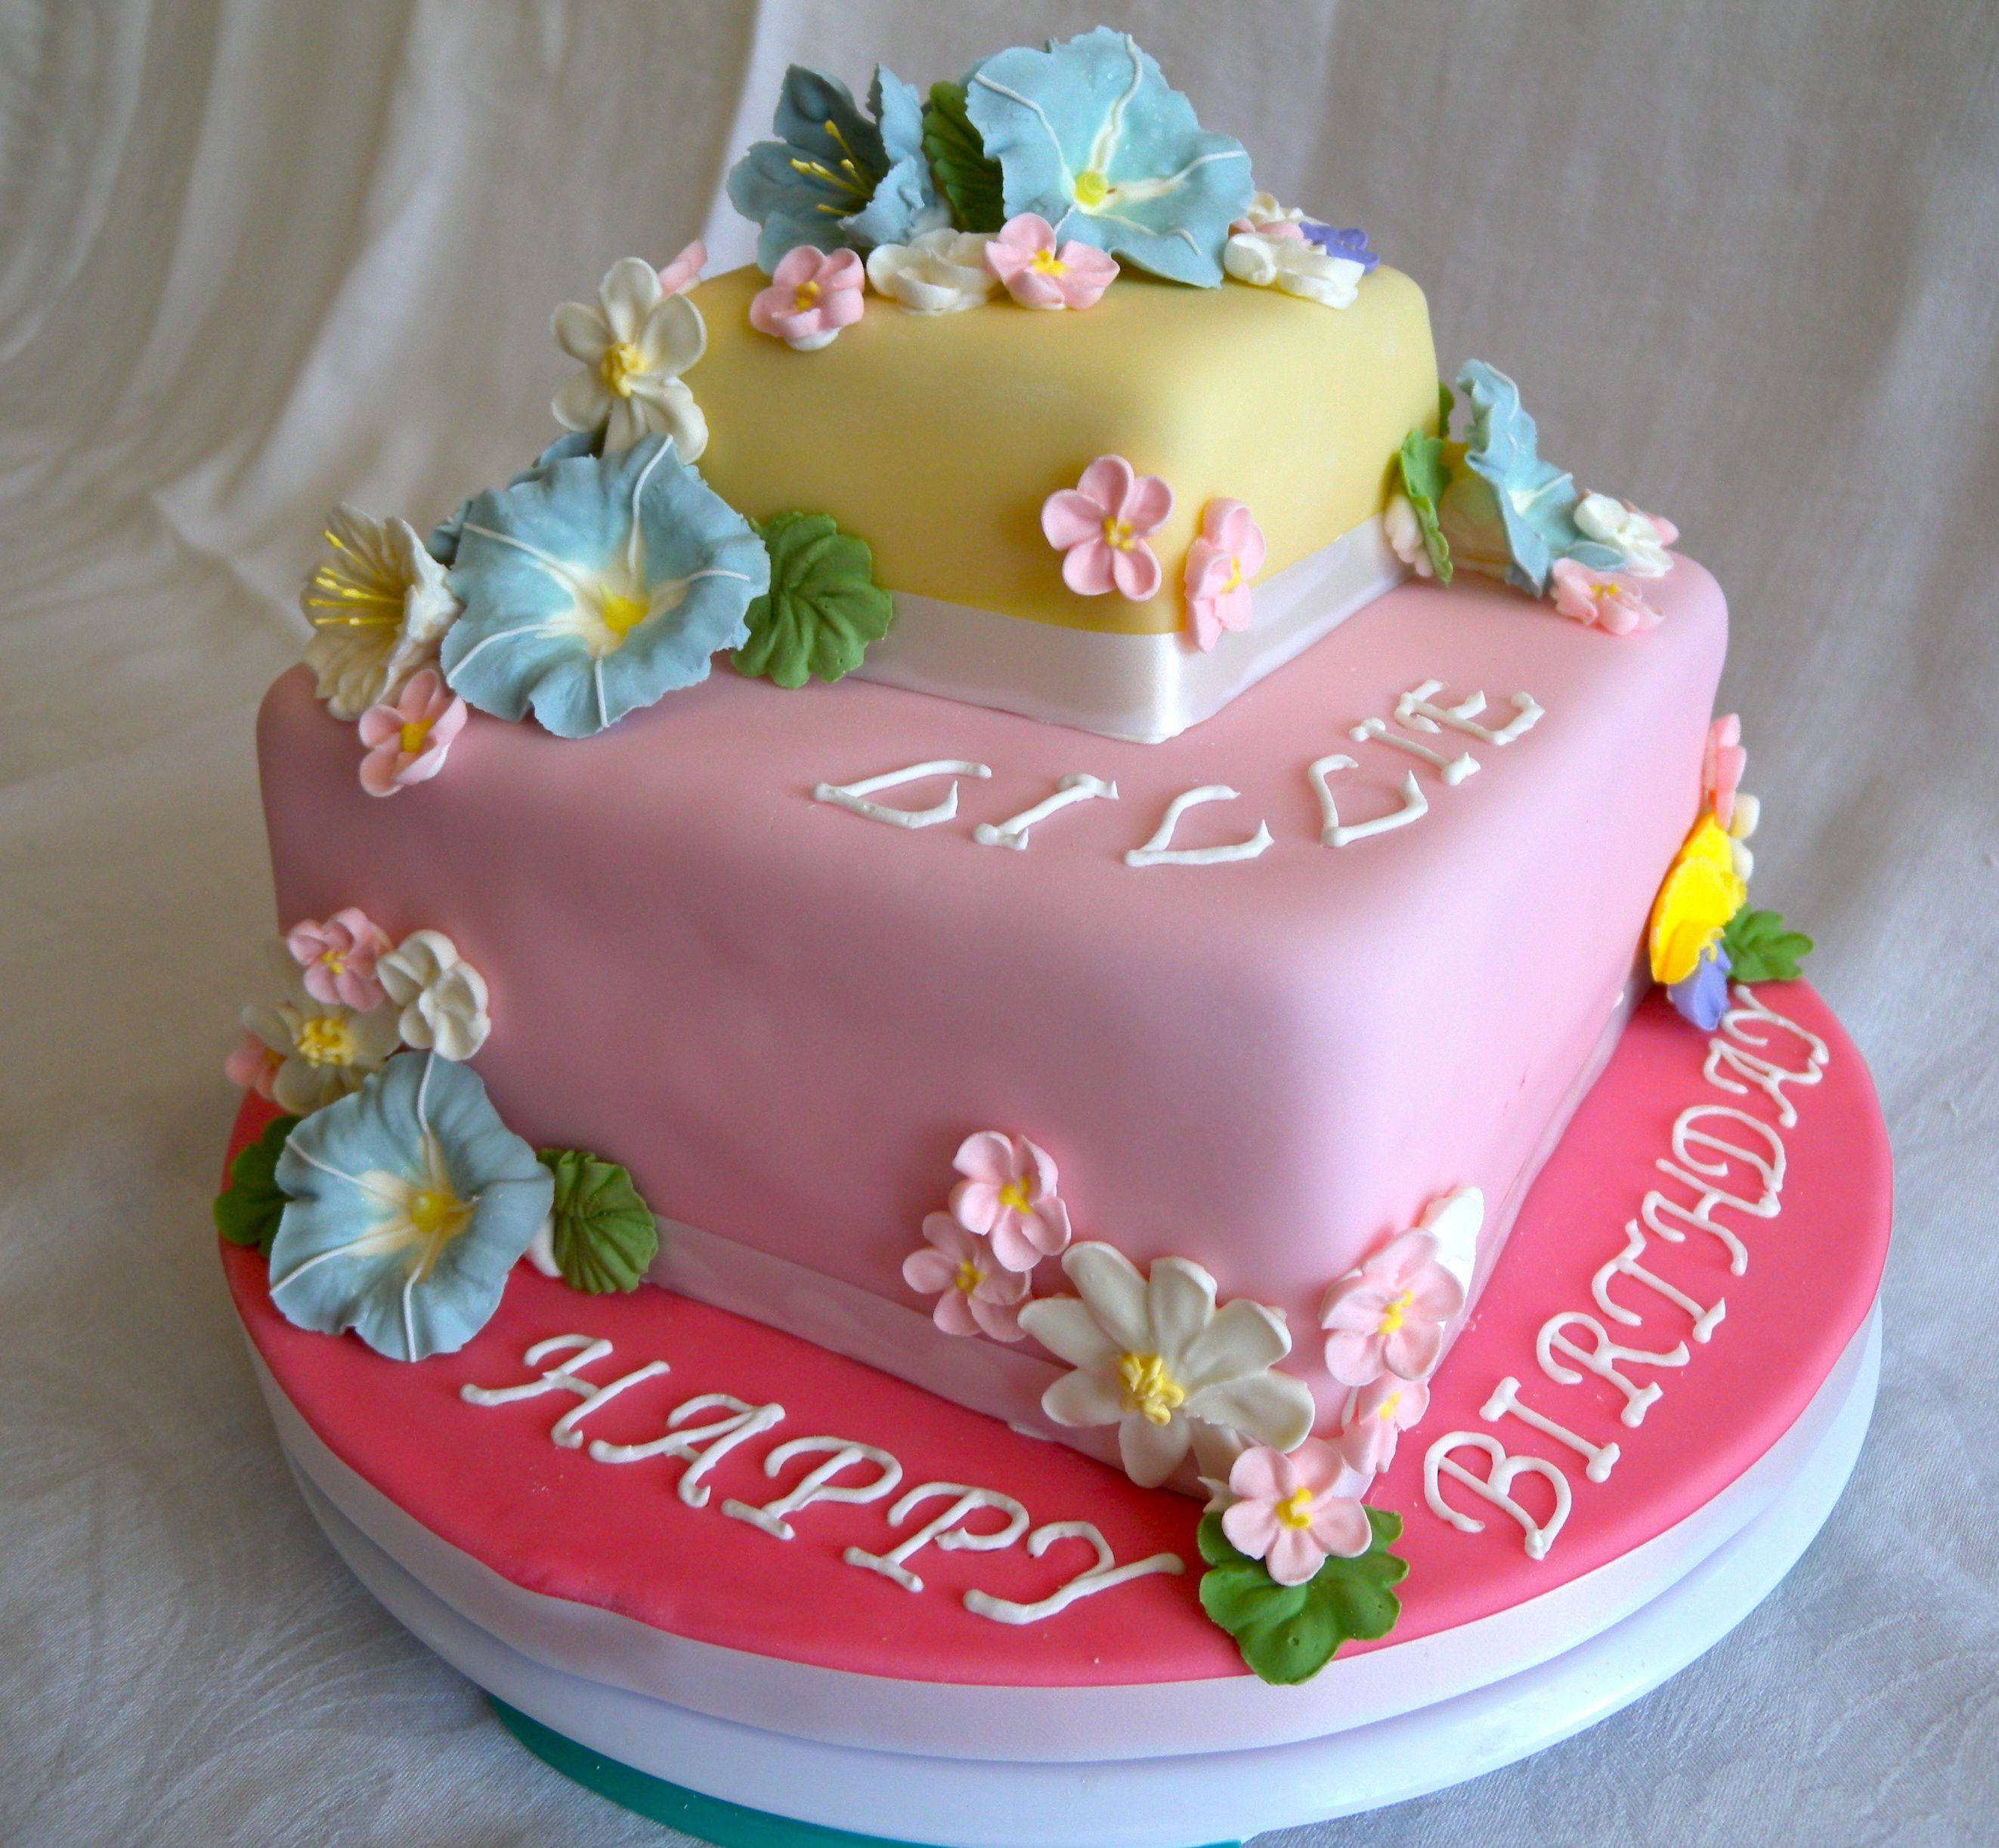 Spring Birthday Cake Cake Ideas Pinterest Birthday Cakes Cake